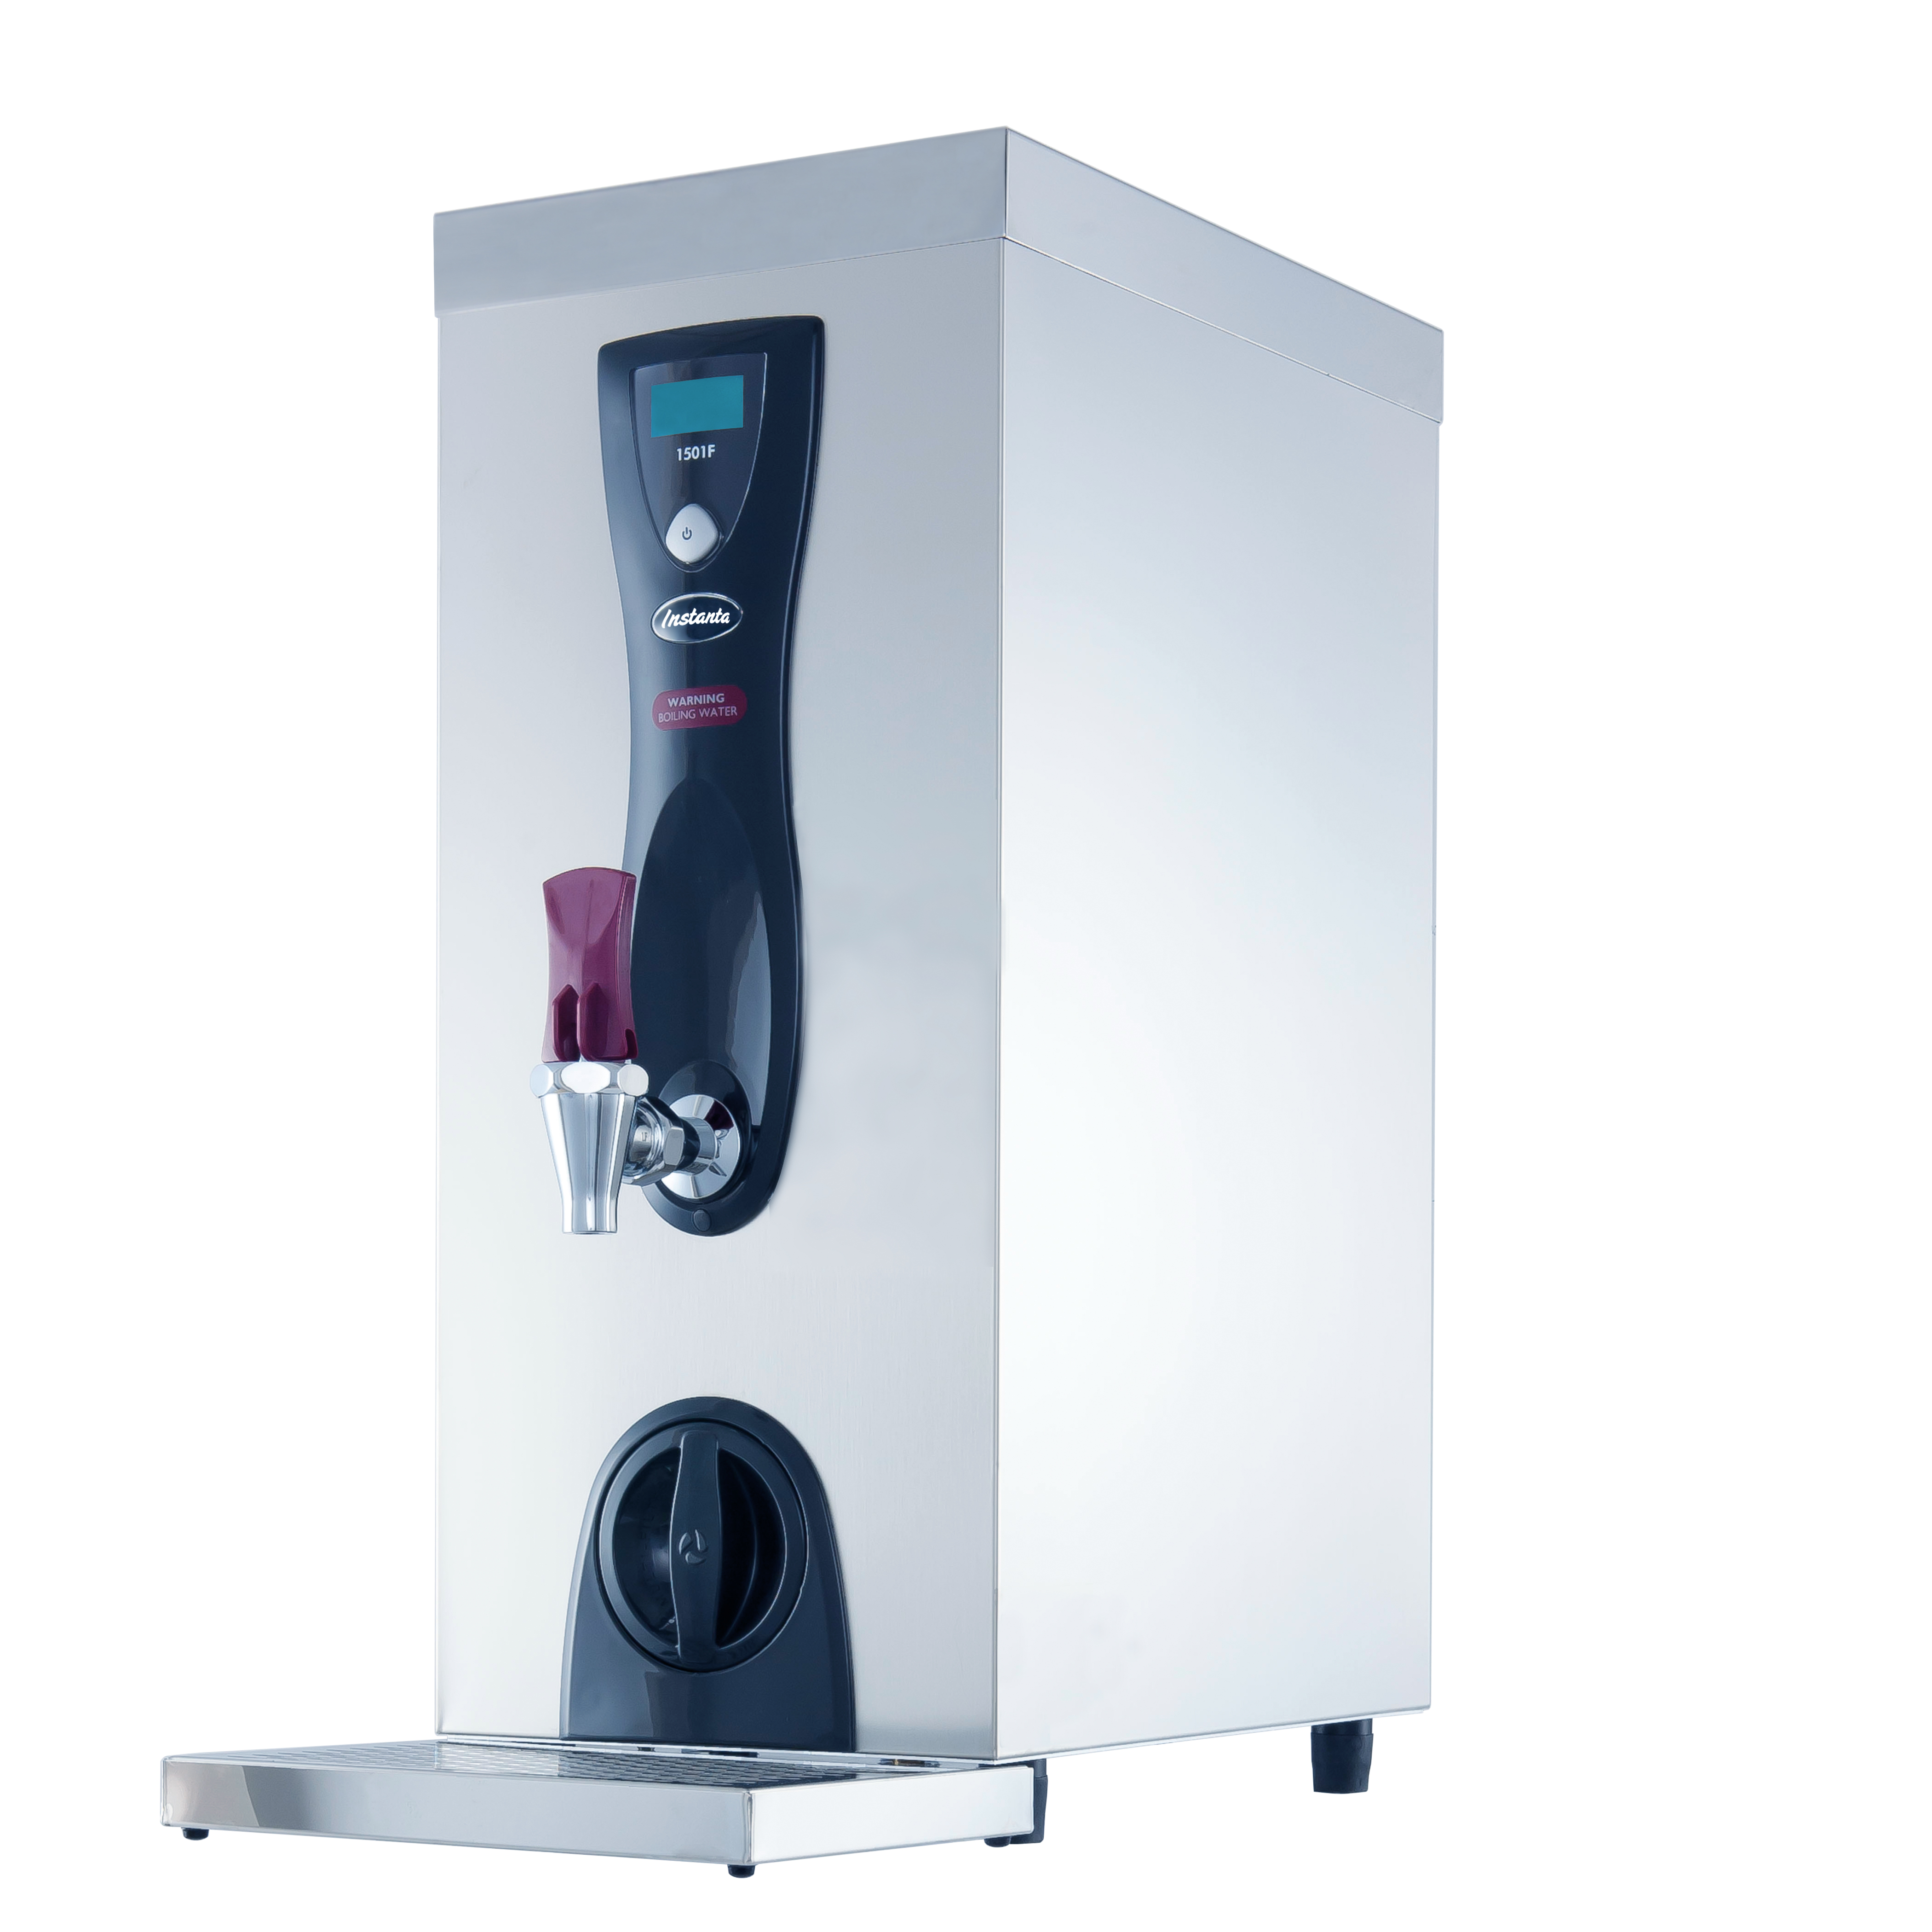 Counter Top Auto-Fill Water Boiler 17 ltr.